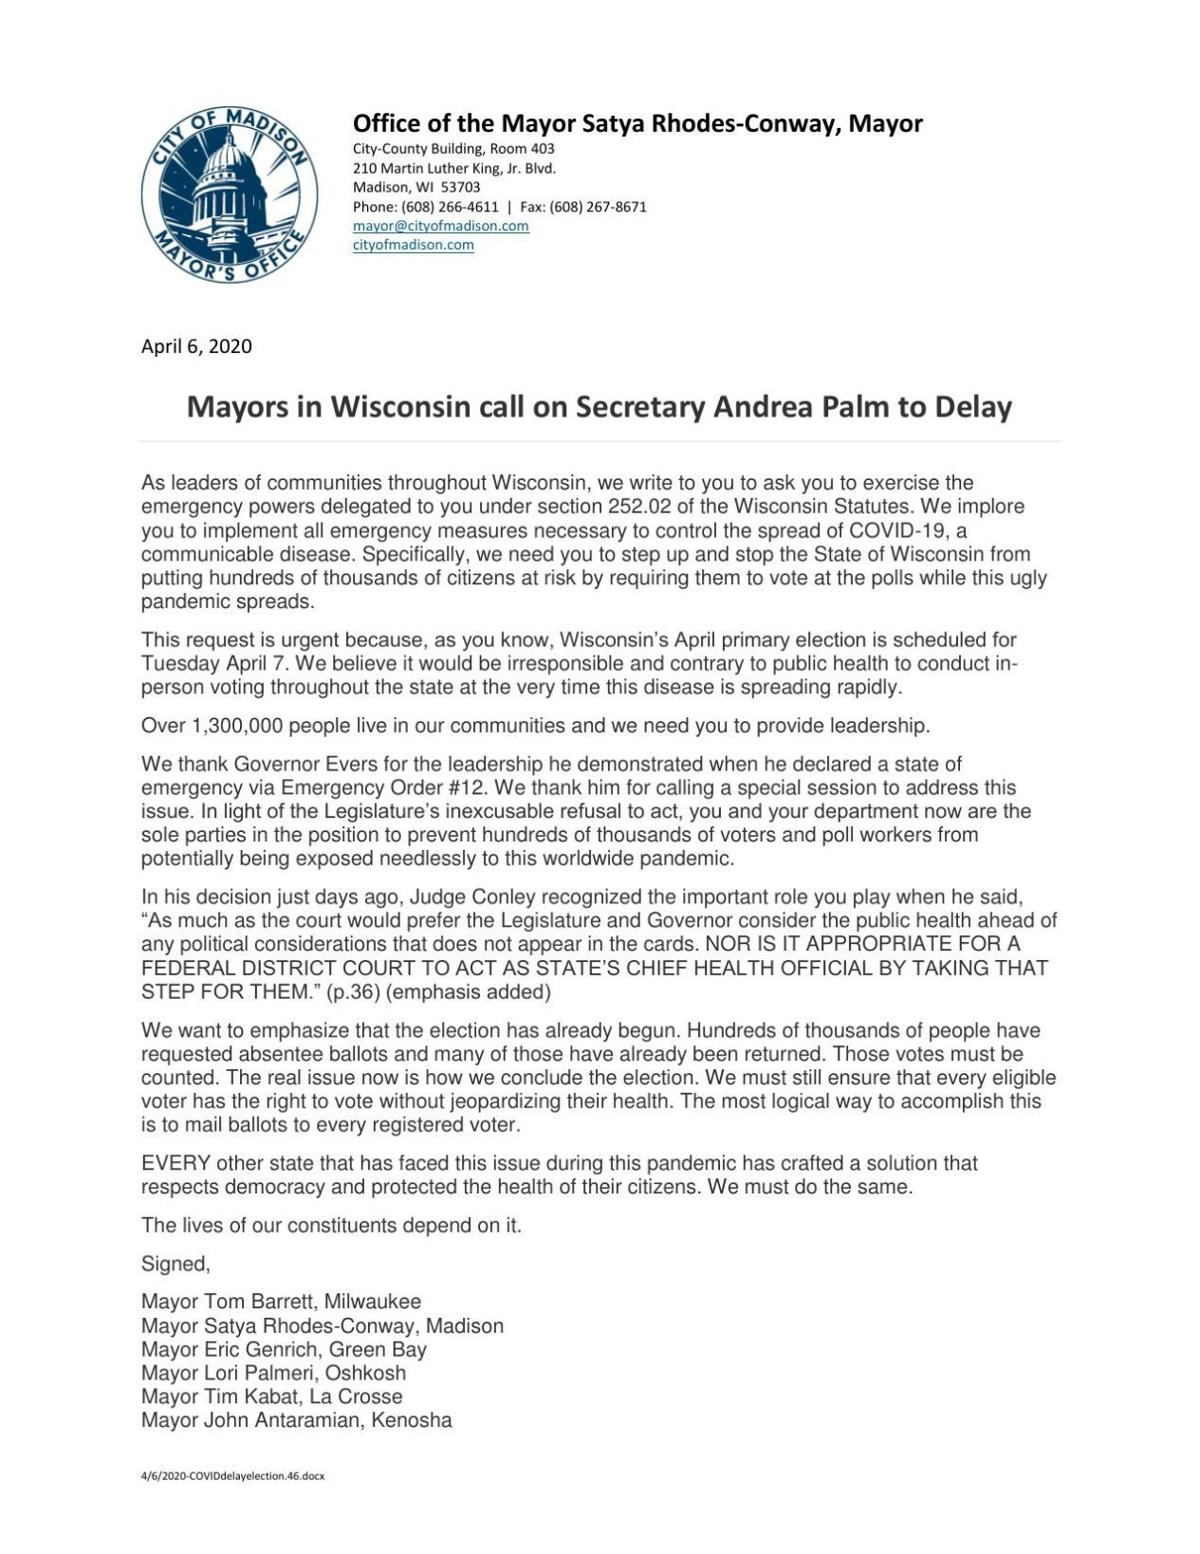 Mayors' letter asking for election delay.pdf